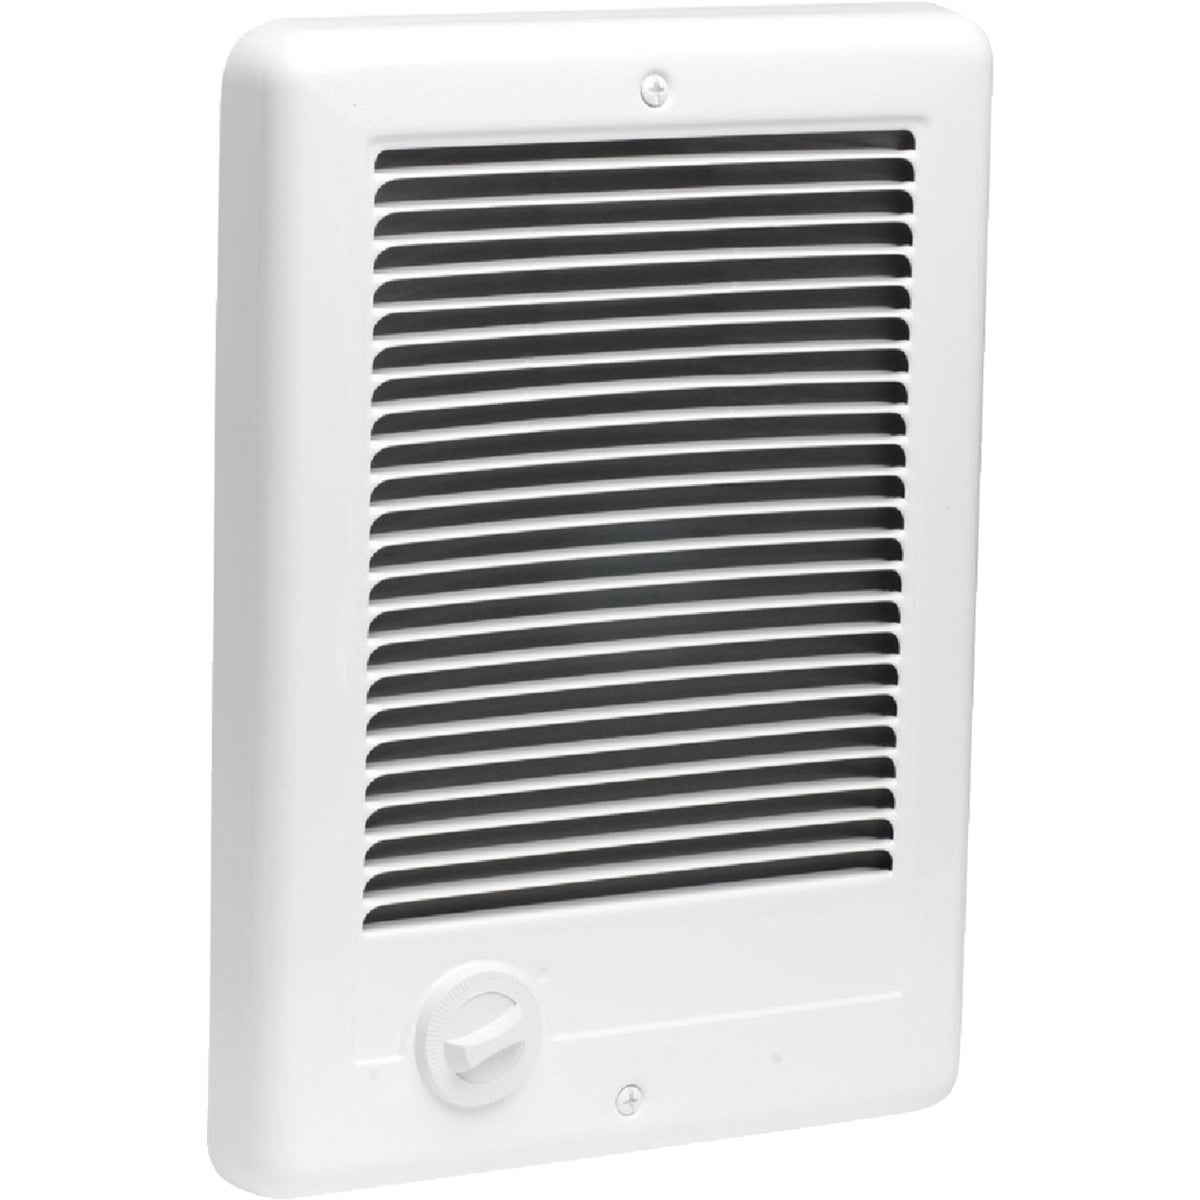 WHT FAN/WALL HEATER - 67508 by Cadet Mfg Co